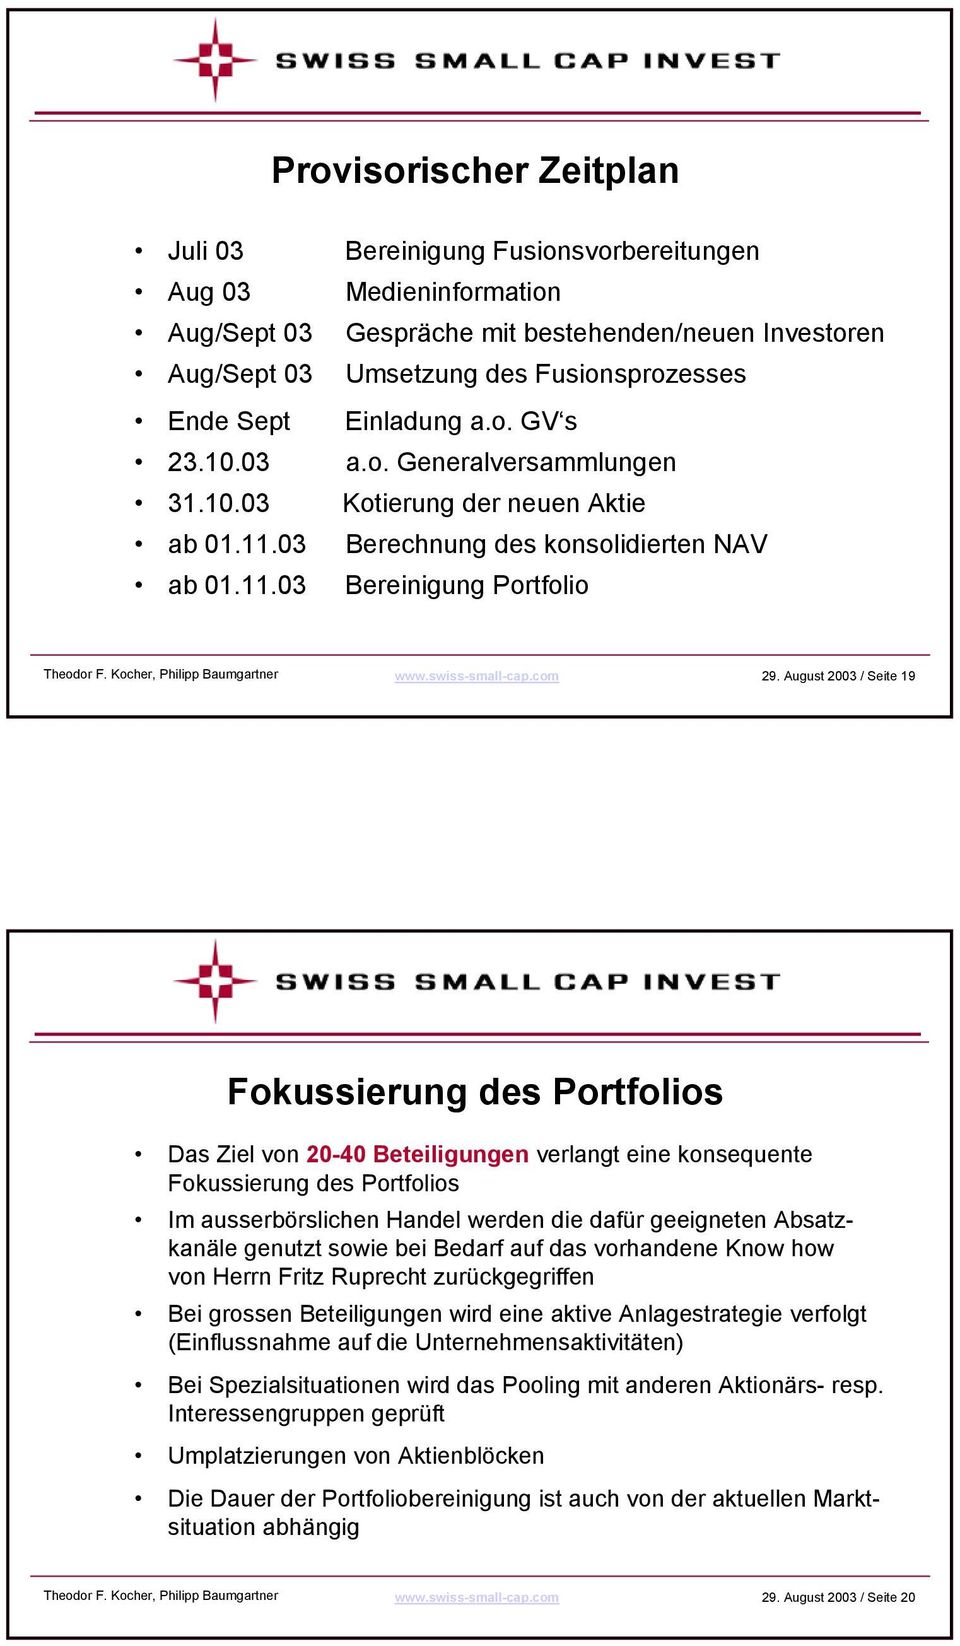 Kocher, Philipp Baumgartner www.swiss-small-cap.com 29.